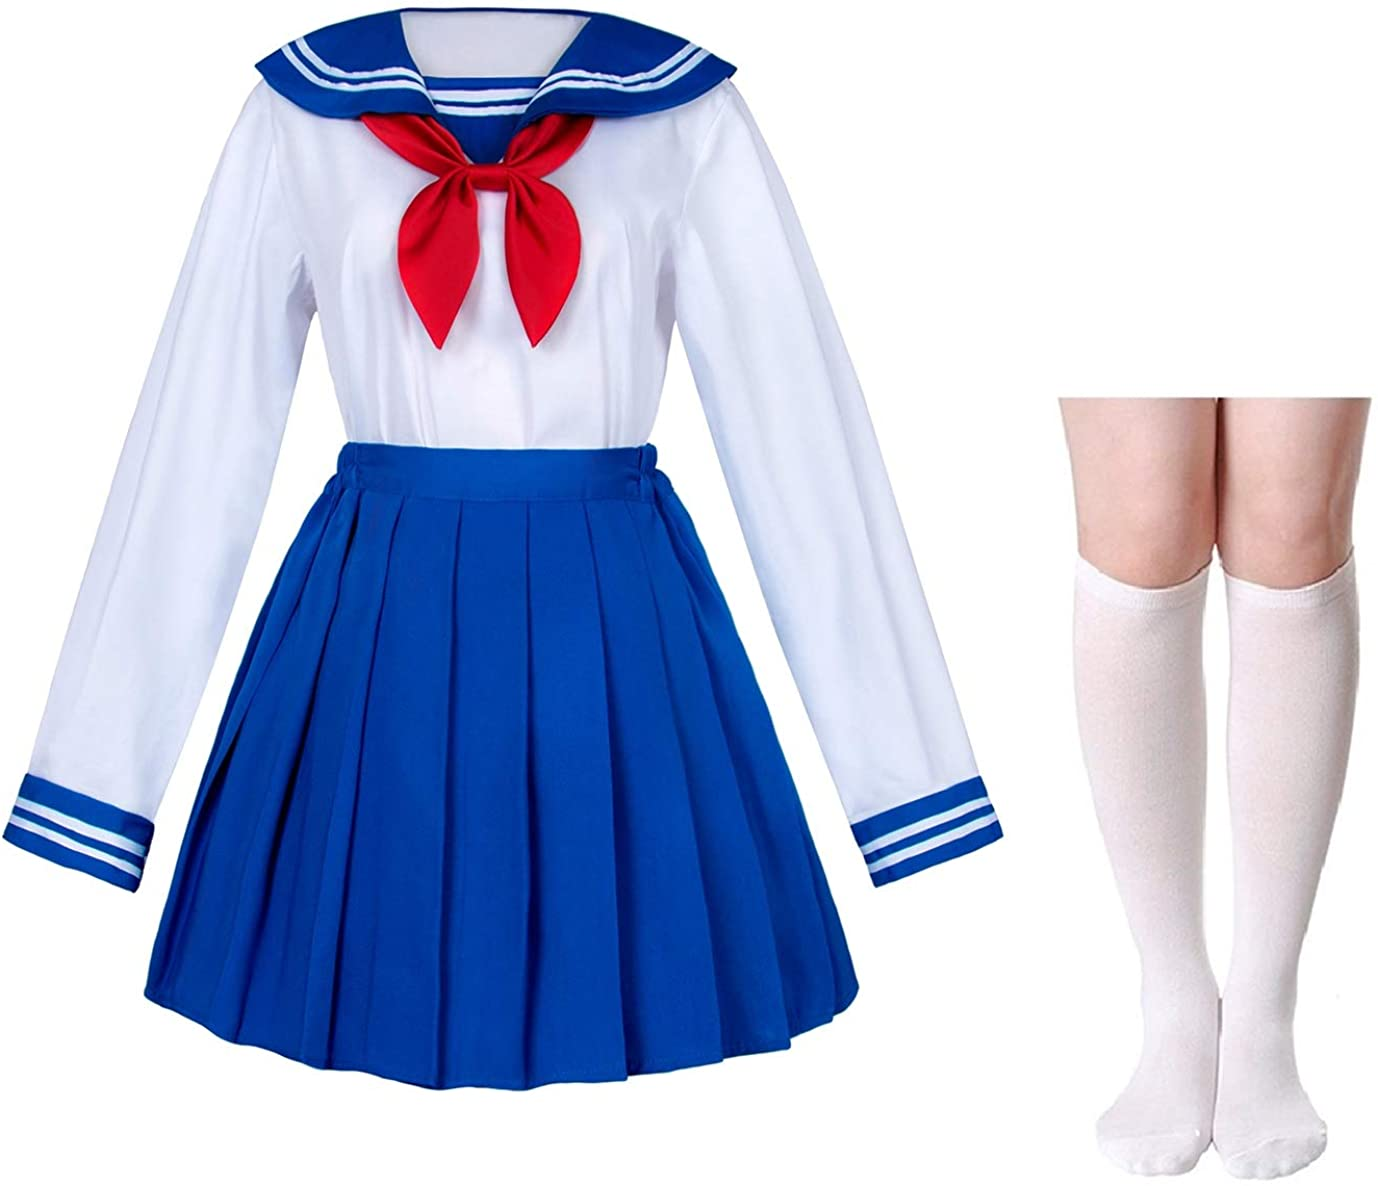 Japanese School Girls Uniform Sailor Navy Blue Pleated Skirt Anime Cosplay  Costumes with Socks Set(SSF8)